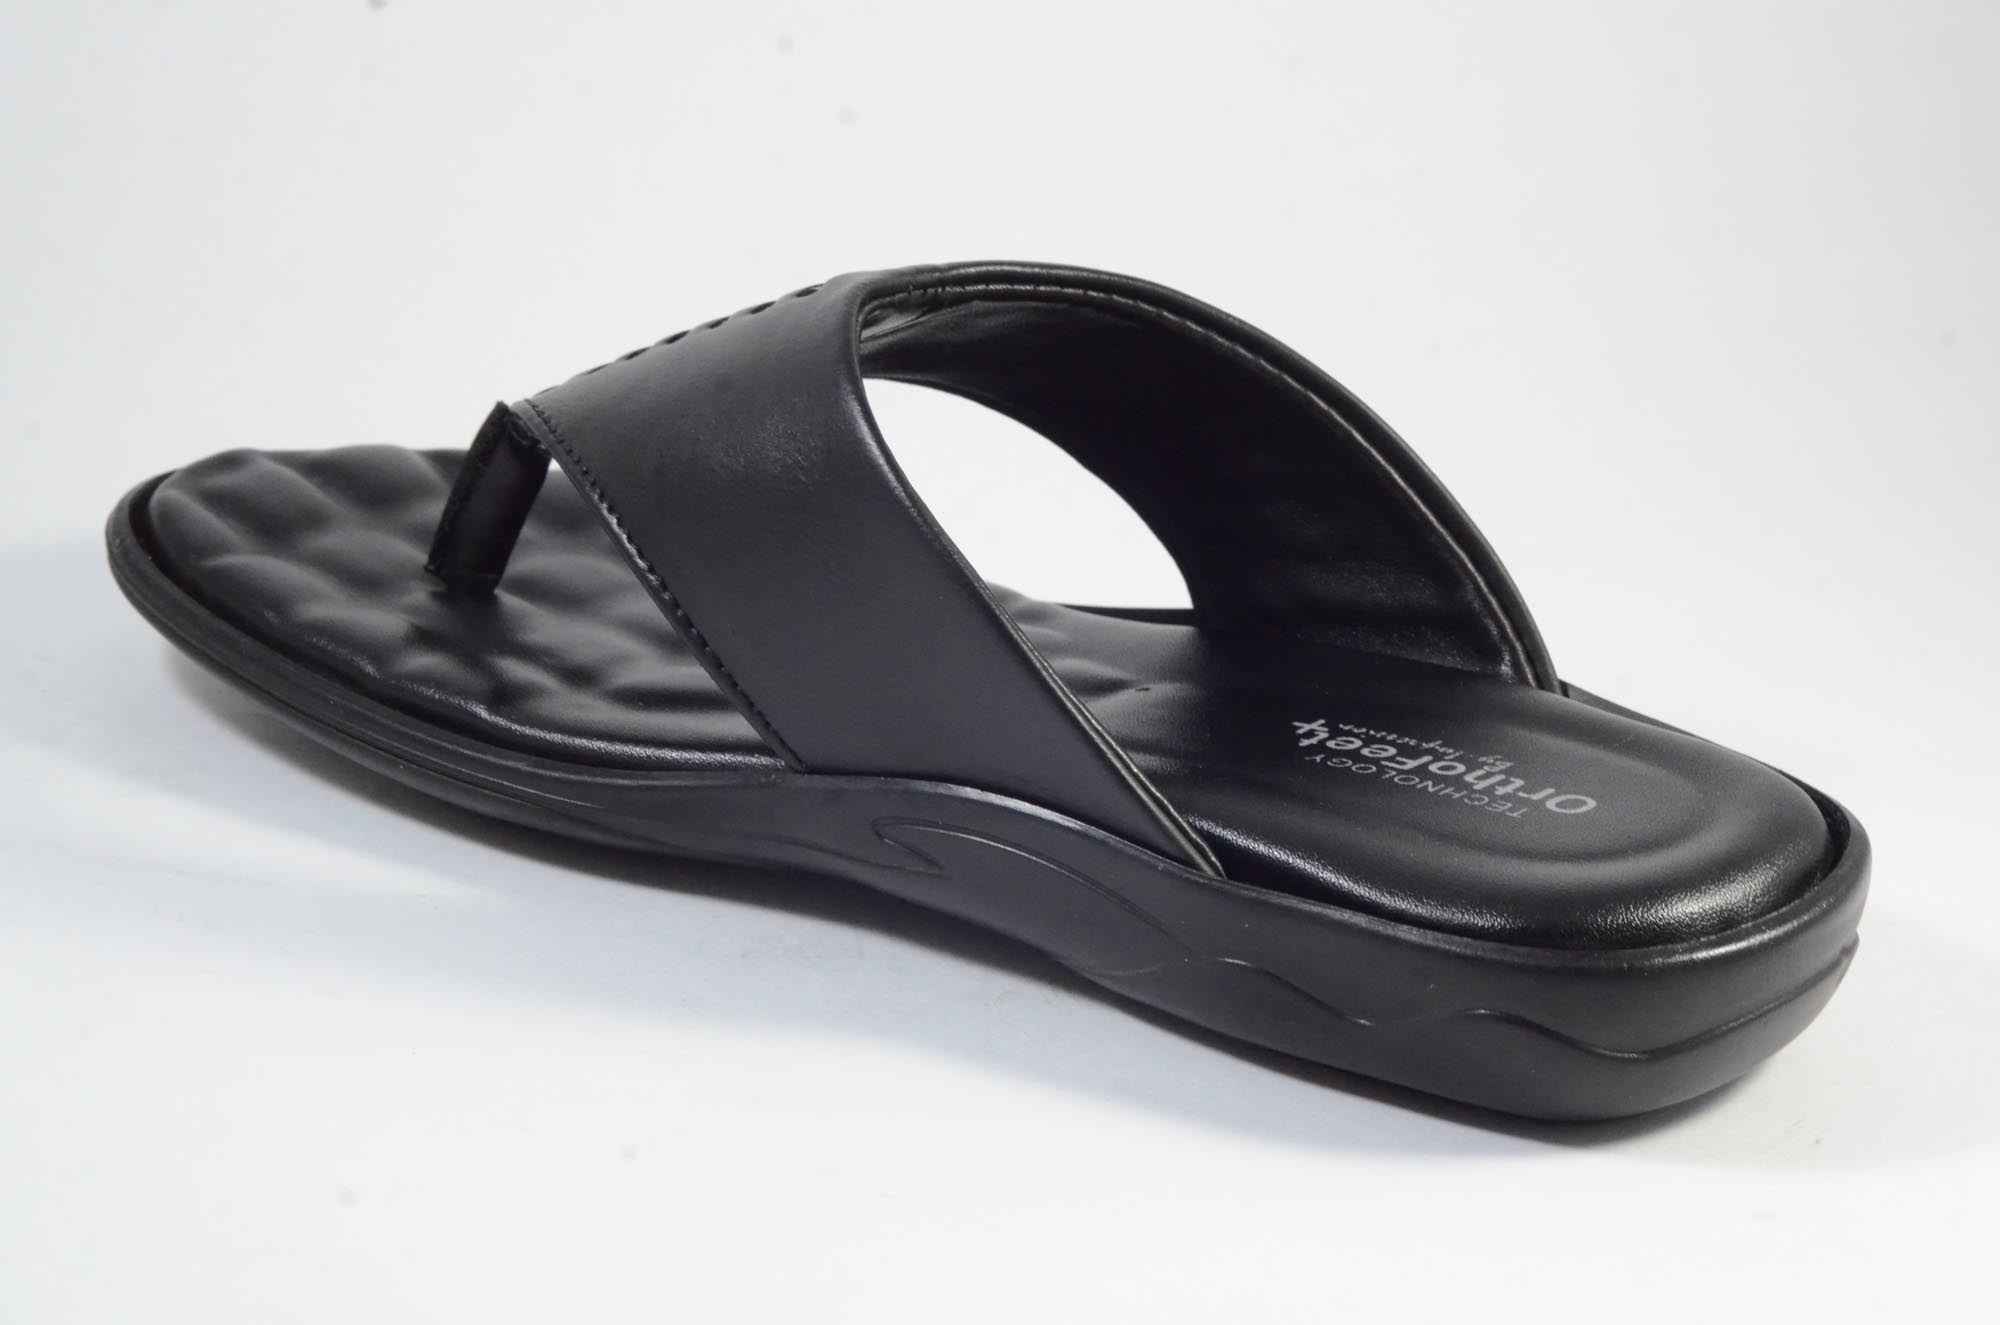 DOCTOR ORTHO SLIPPERS COMFORTABLE AND BEST QUALITY KS_244 (BLACK,7-10,4)